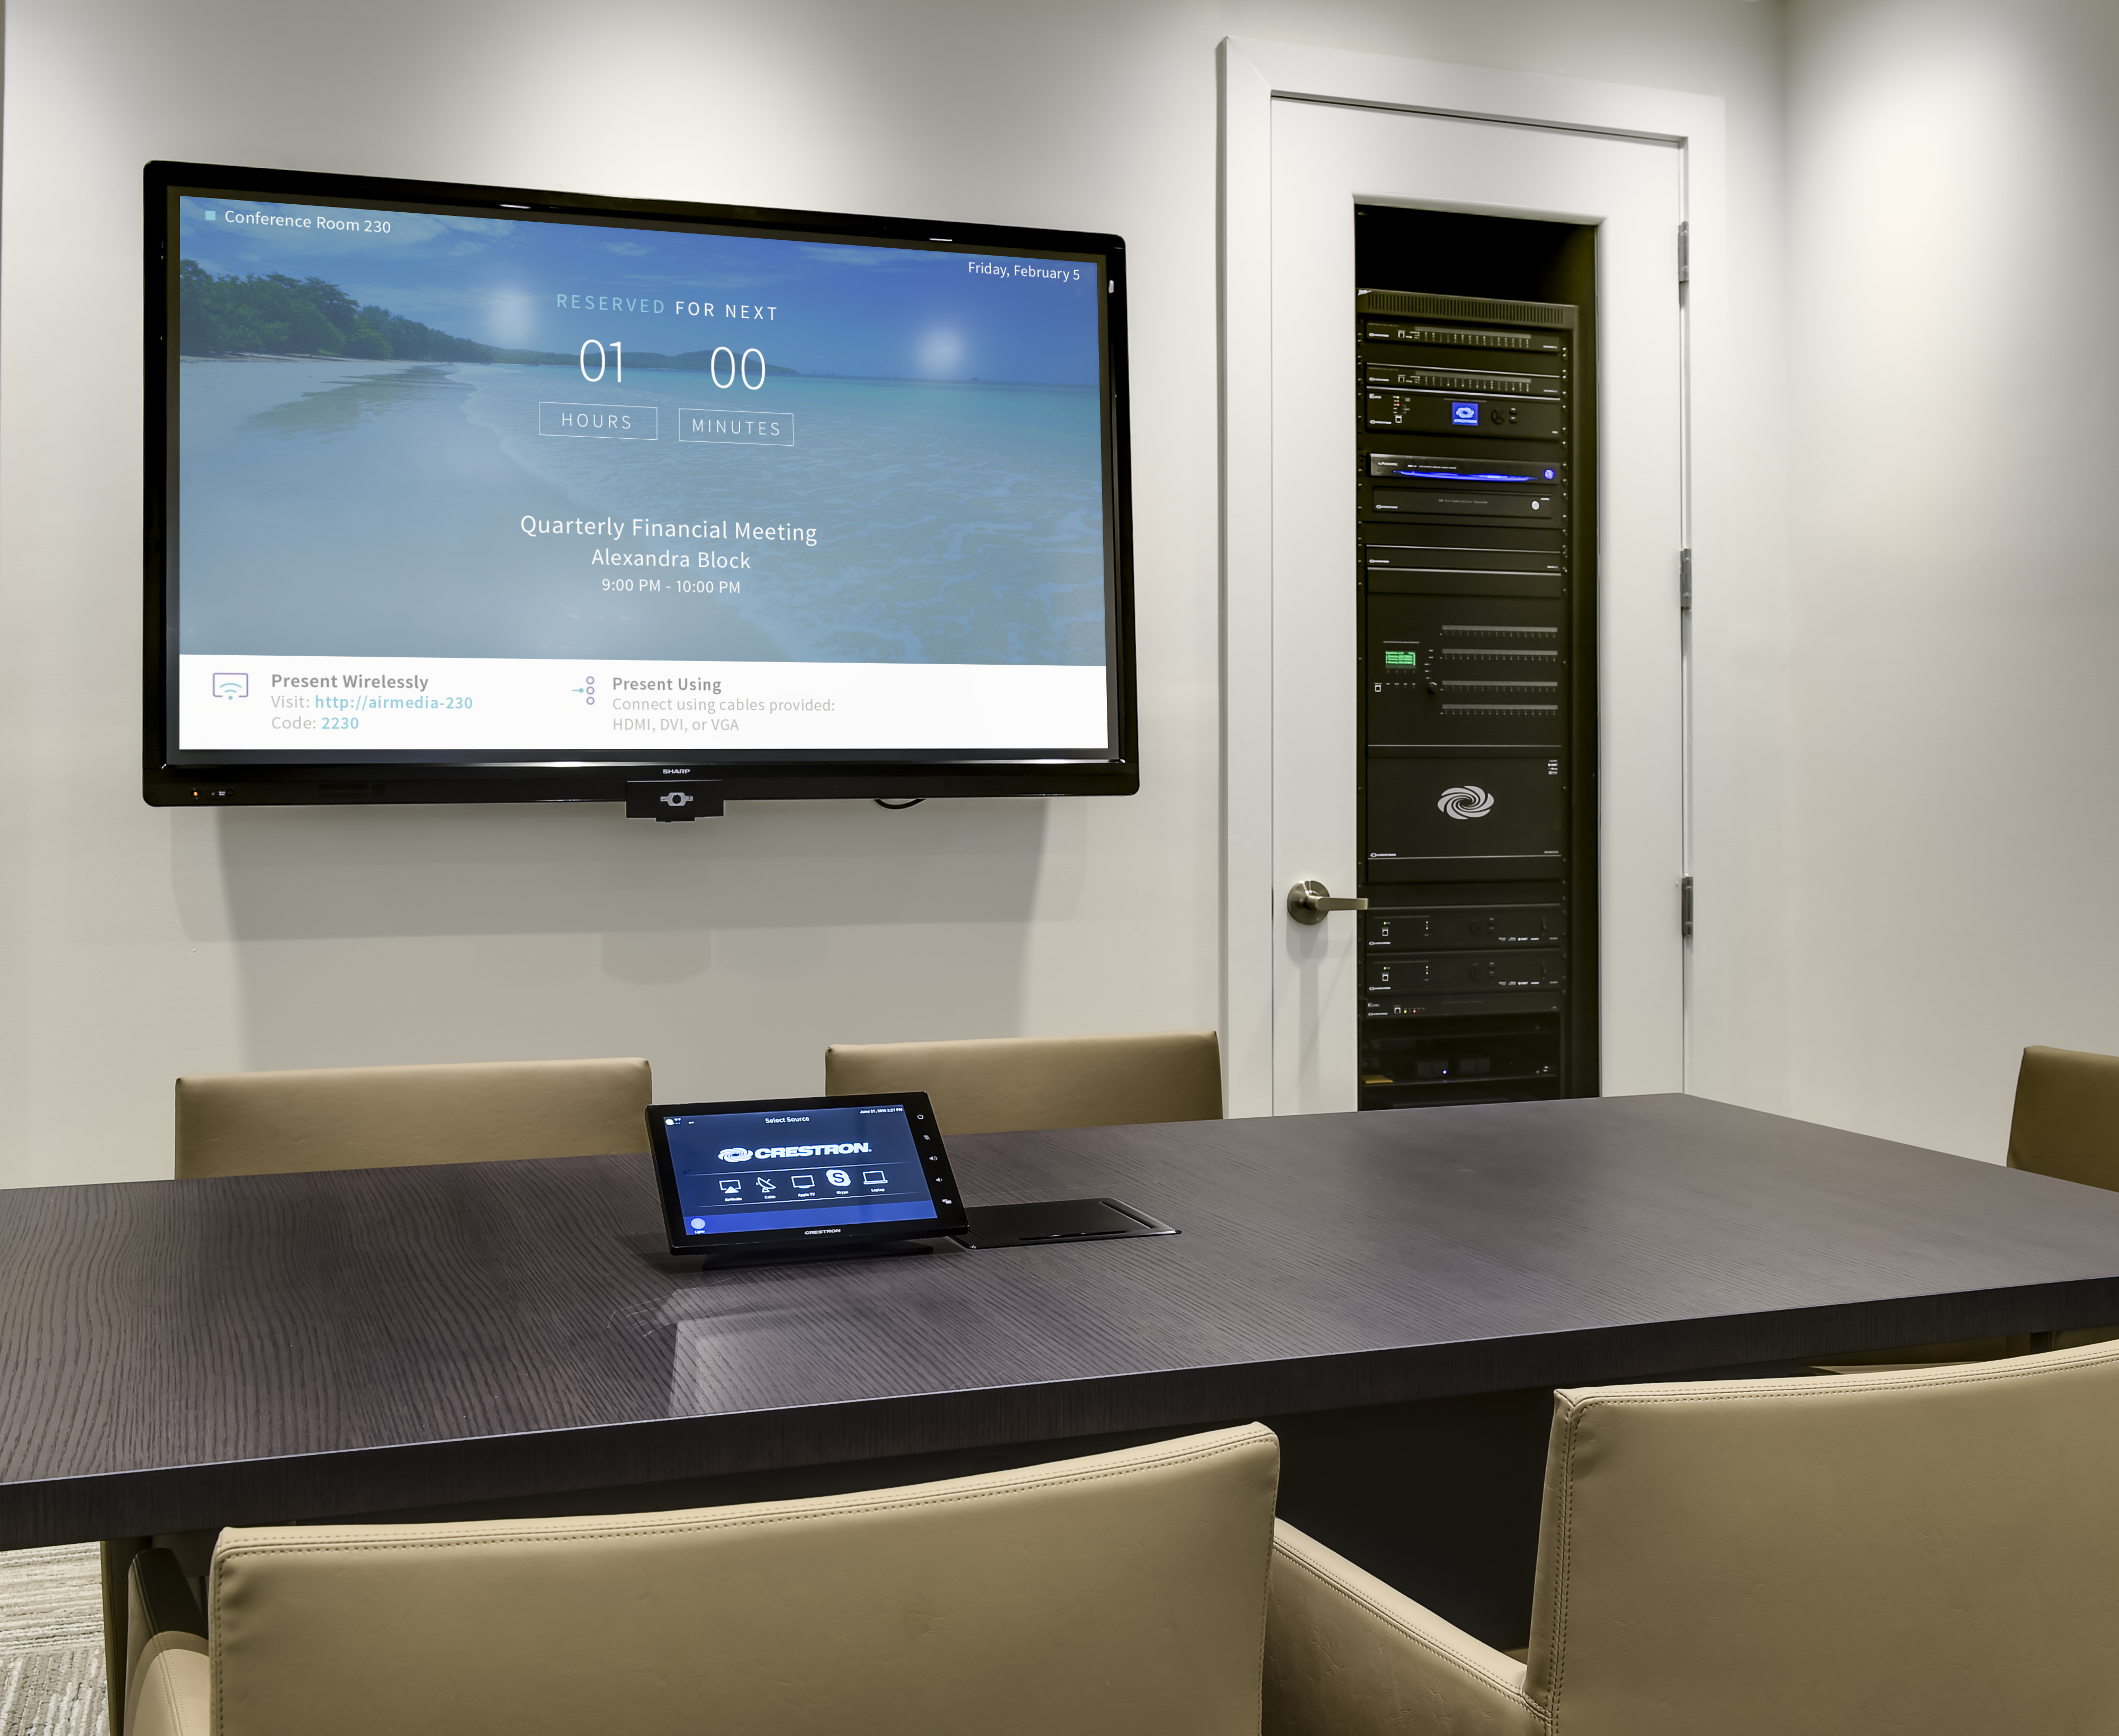 Meeting, Conference Room - Commercial Automation - Commercial Spaces - Audio Excellence